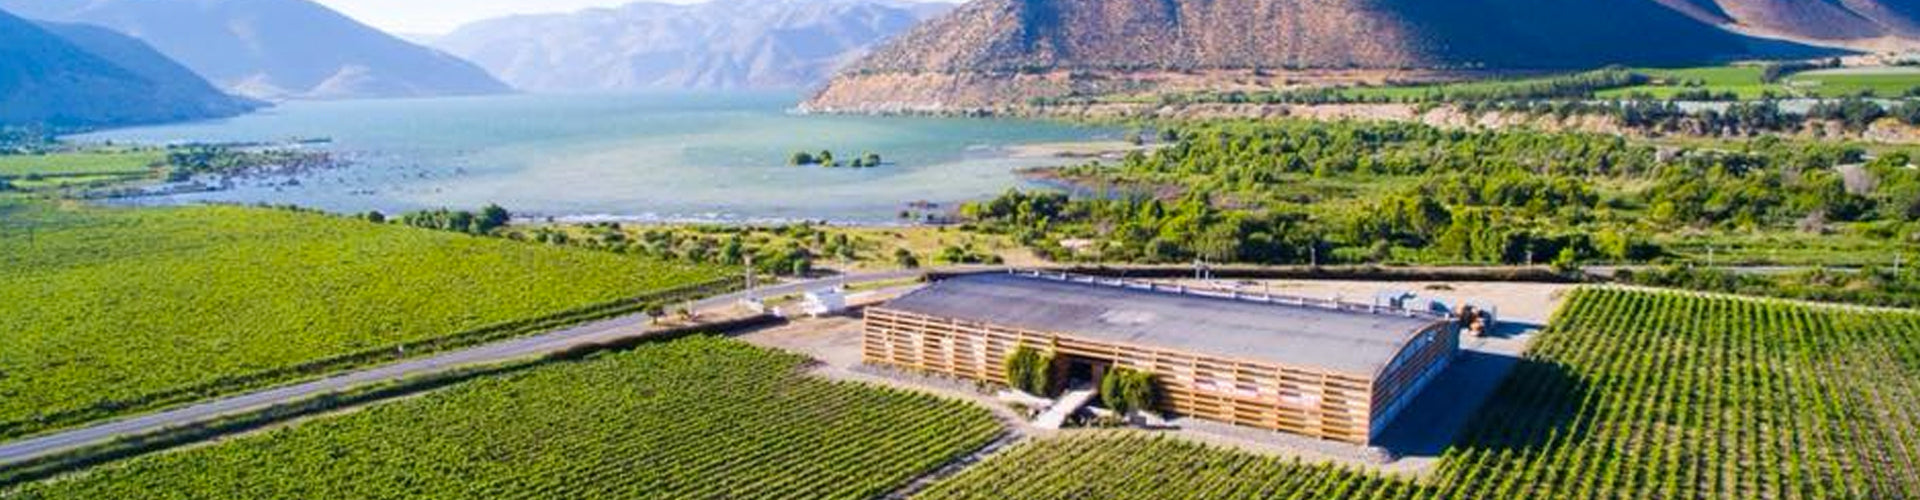 Viña Falernia Winery and Vineyards Elqui Valley in Chile